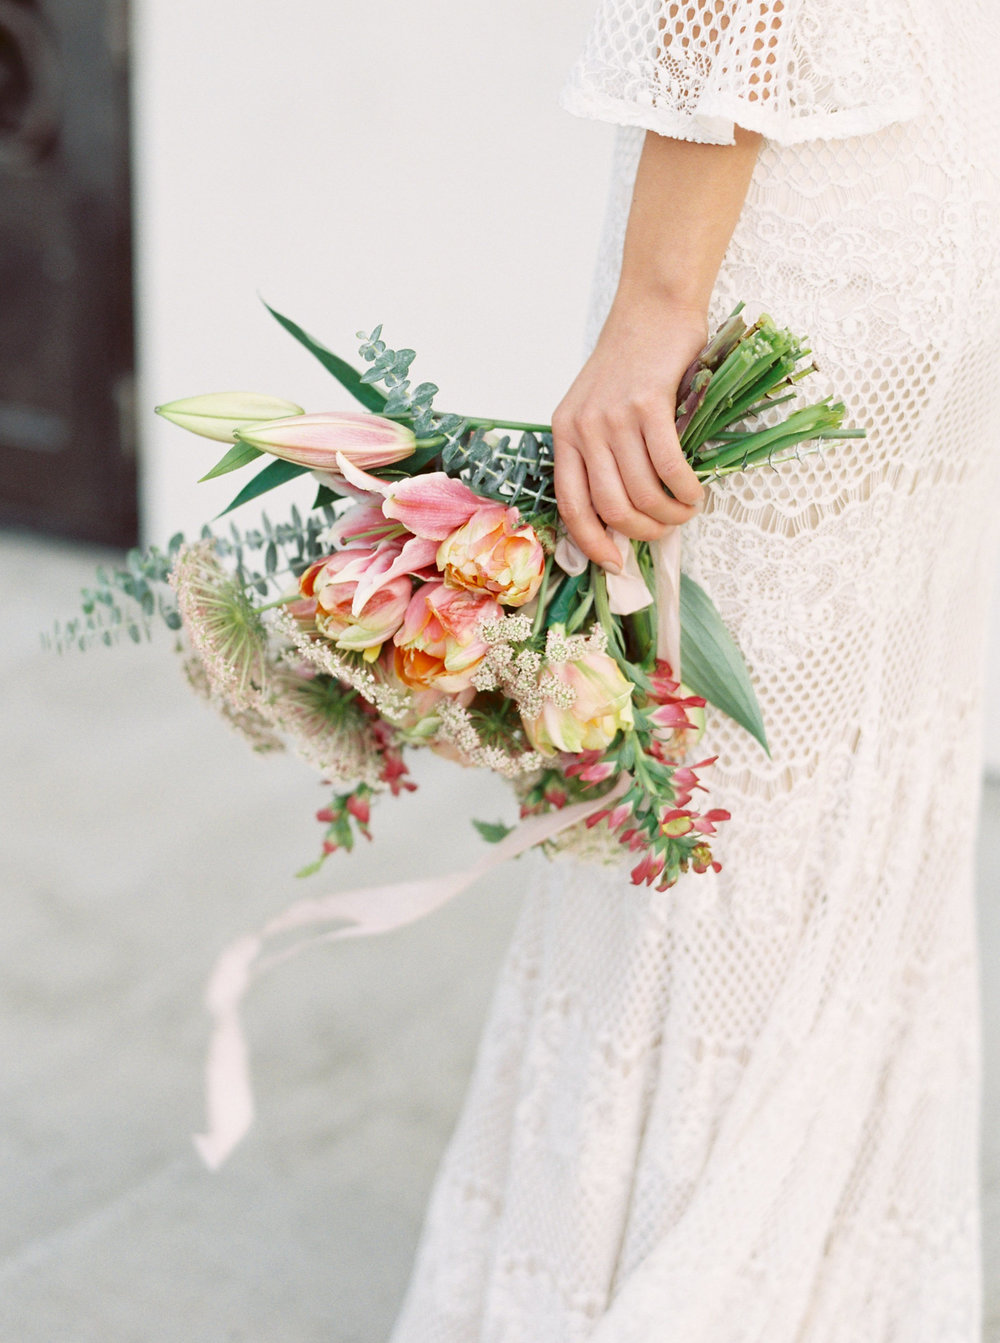 boho-inspired-wedding-at-casa-bella-in-sunol-california-85.jpg